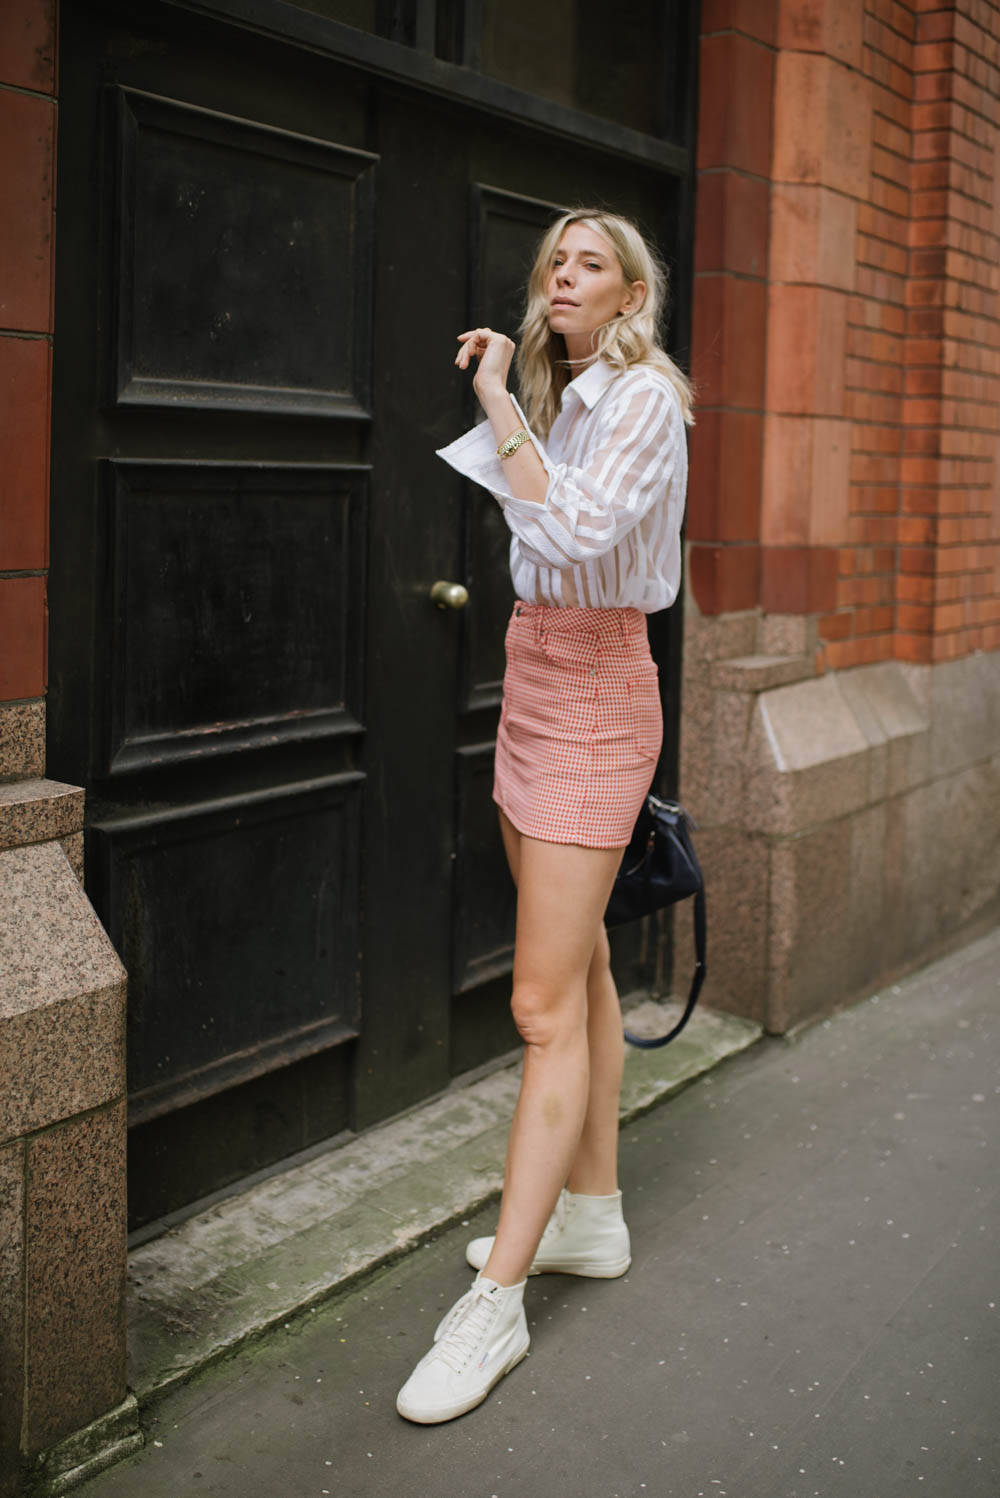 Red-Topshop-skirt-final-edits-12.jpg